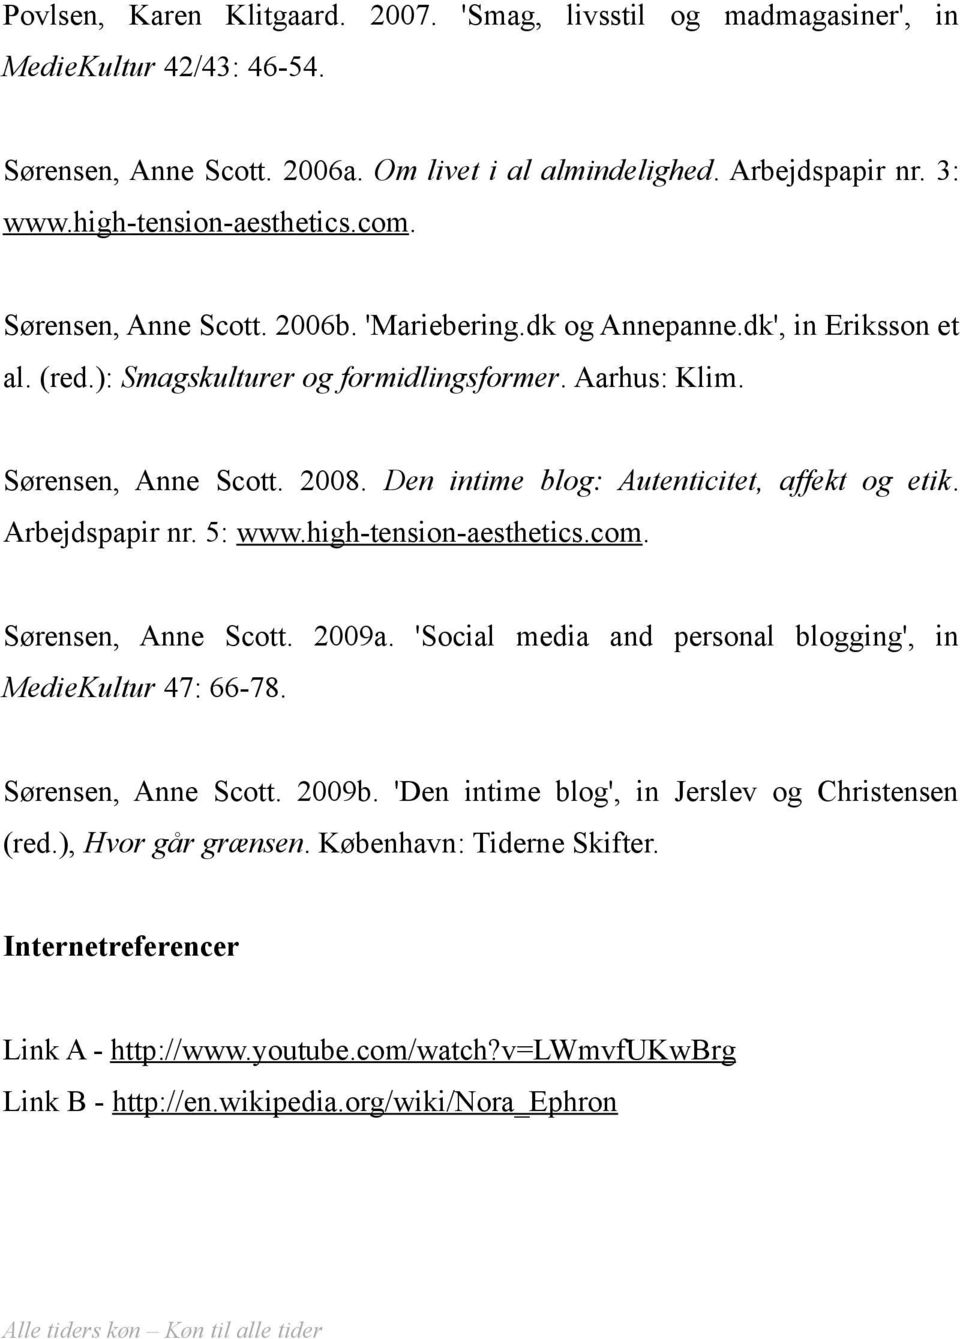 Den intime blog: Autenticitet, affekt og etik. Arbejdspapir nr. 5: www.high-tension-aesthetics.com. Sørensen, Anne Scott. 2009a. 'Social media and personal blogging', in MedieKultur 47: 66-78.